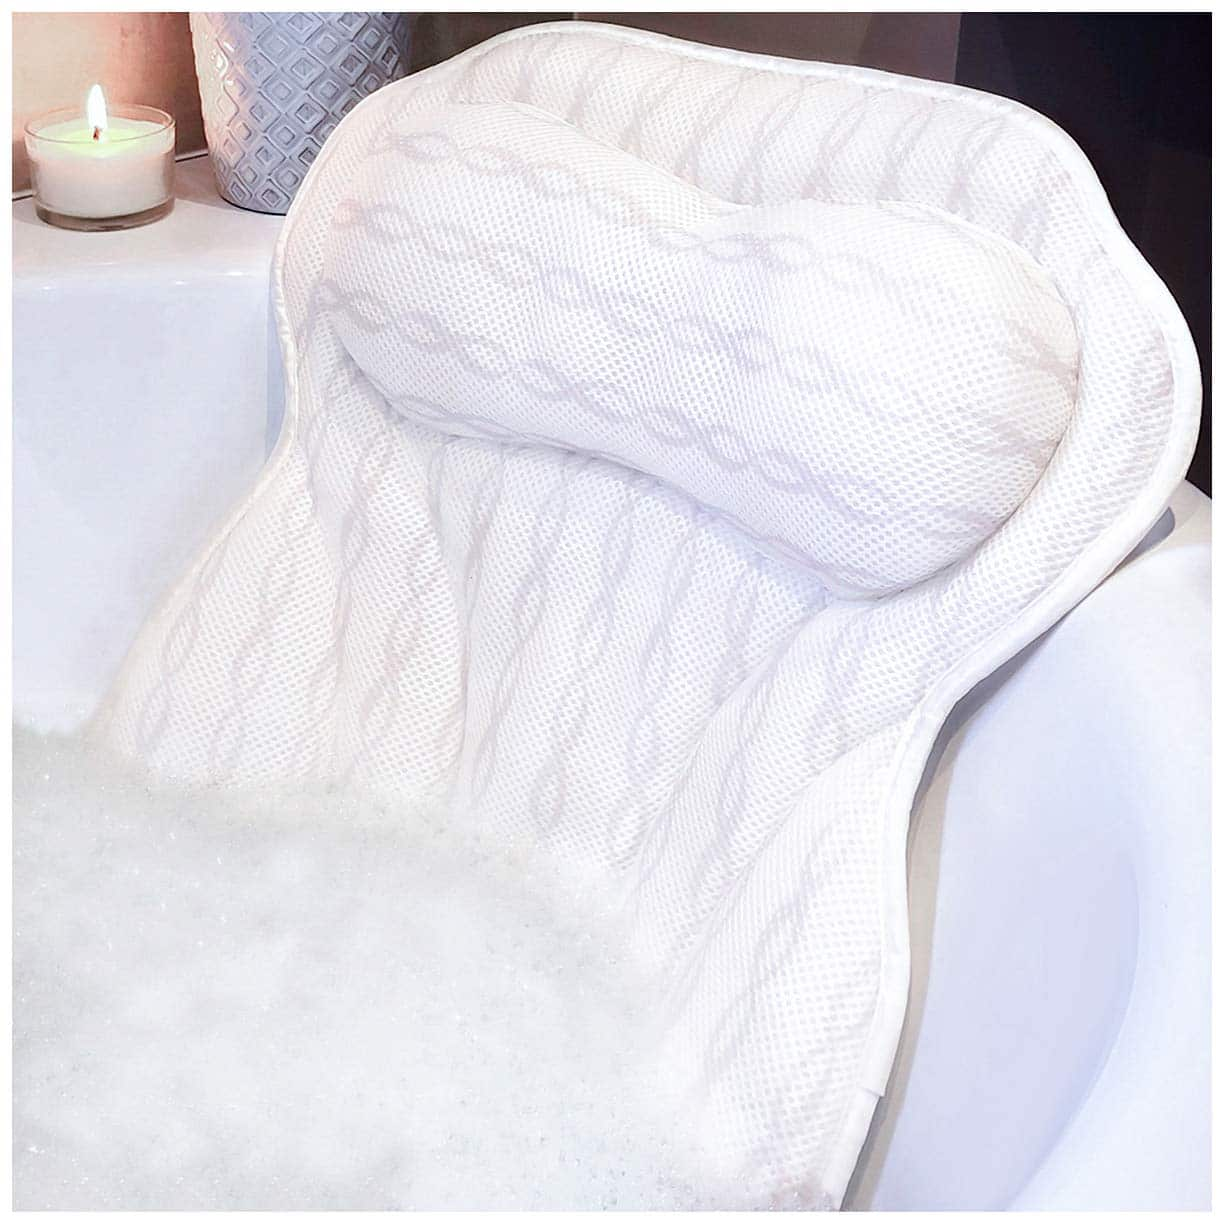 Luxury Bath Pillow Bathtub Pillow - Ergonomic Neck Support